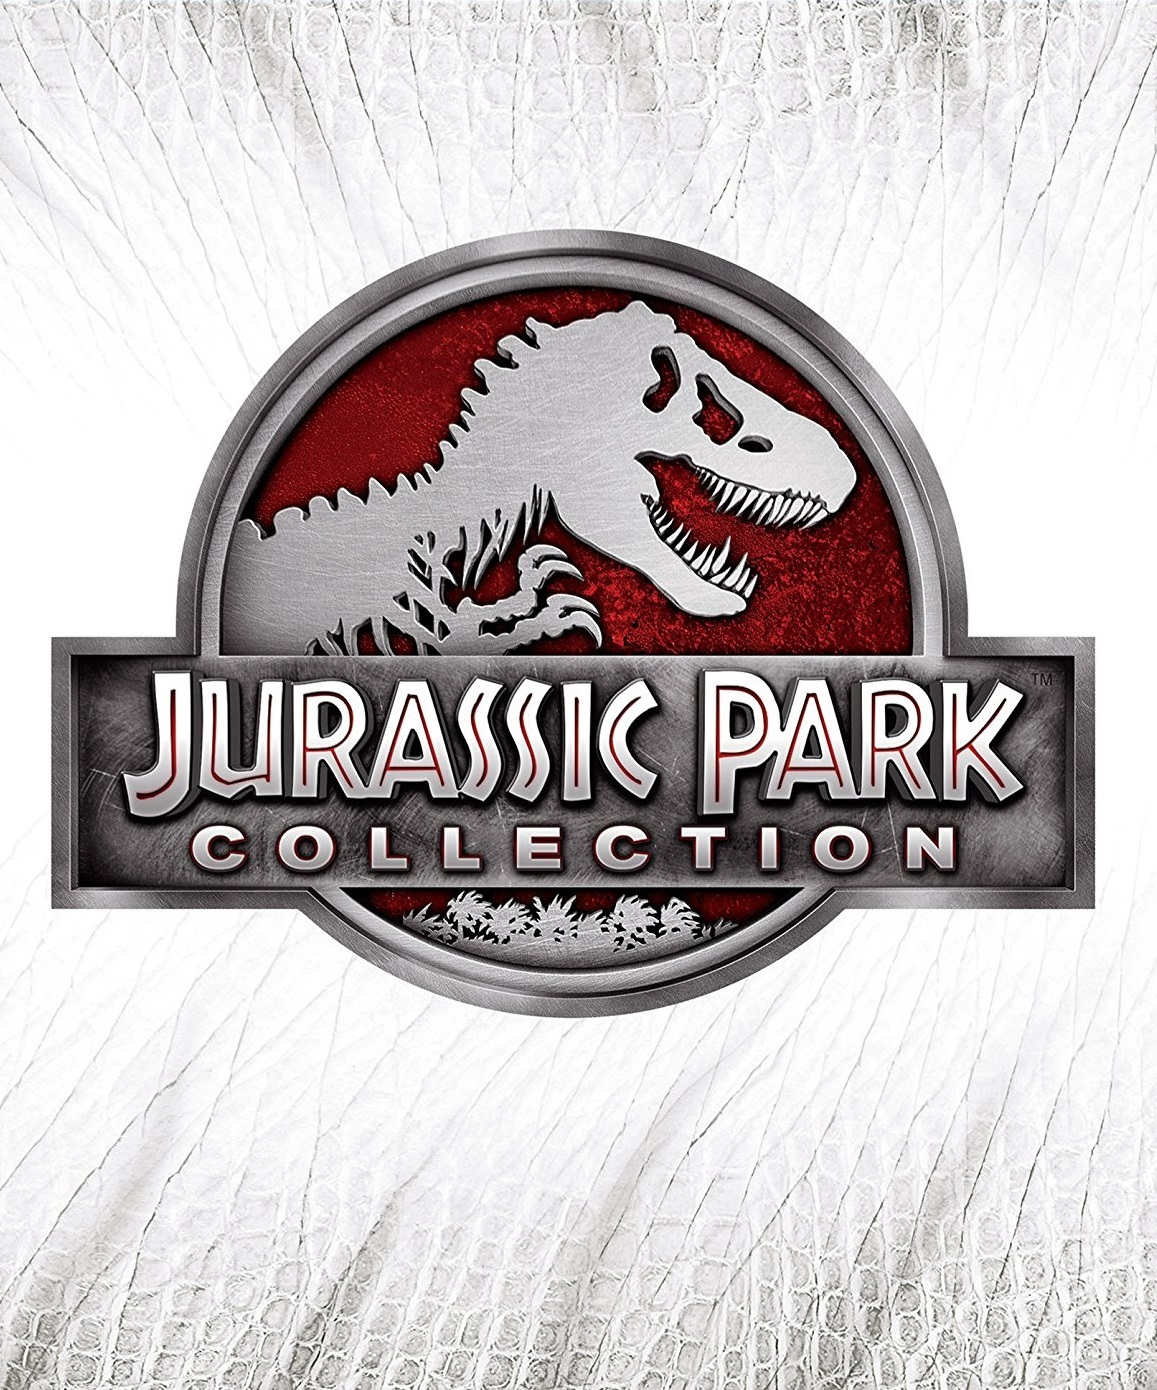 Jurassic Park Collection (6 Disc Blu-ray + 3D Blu-ray Set)